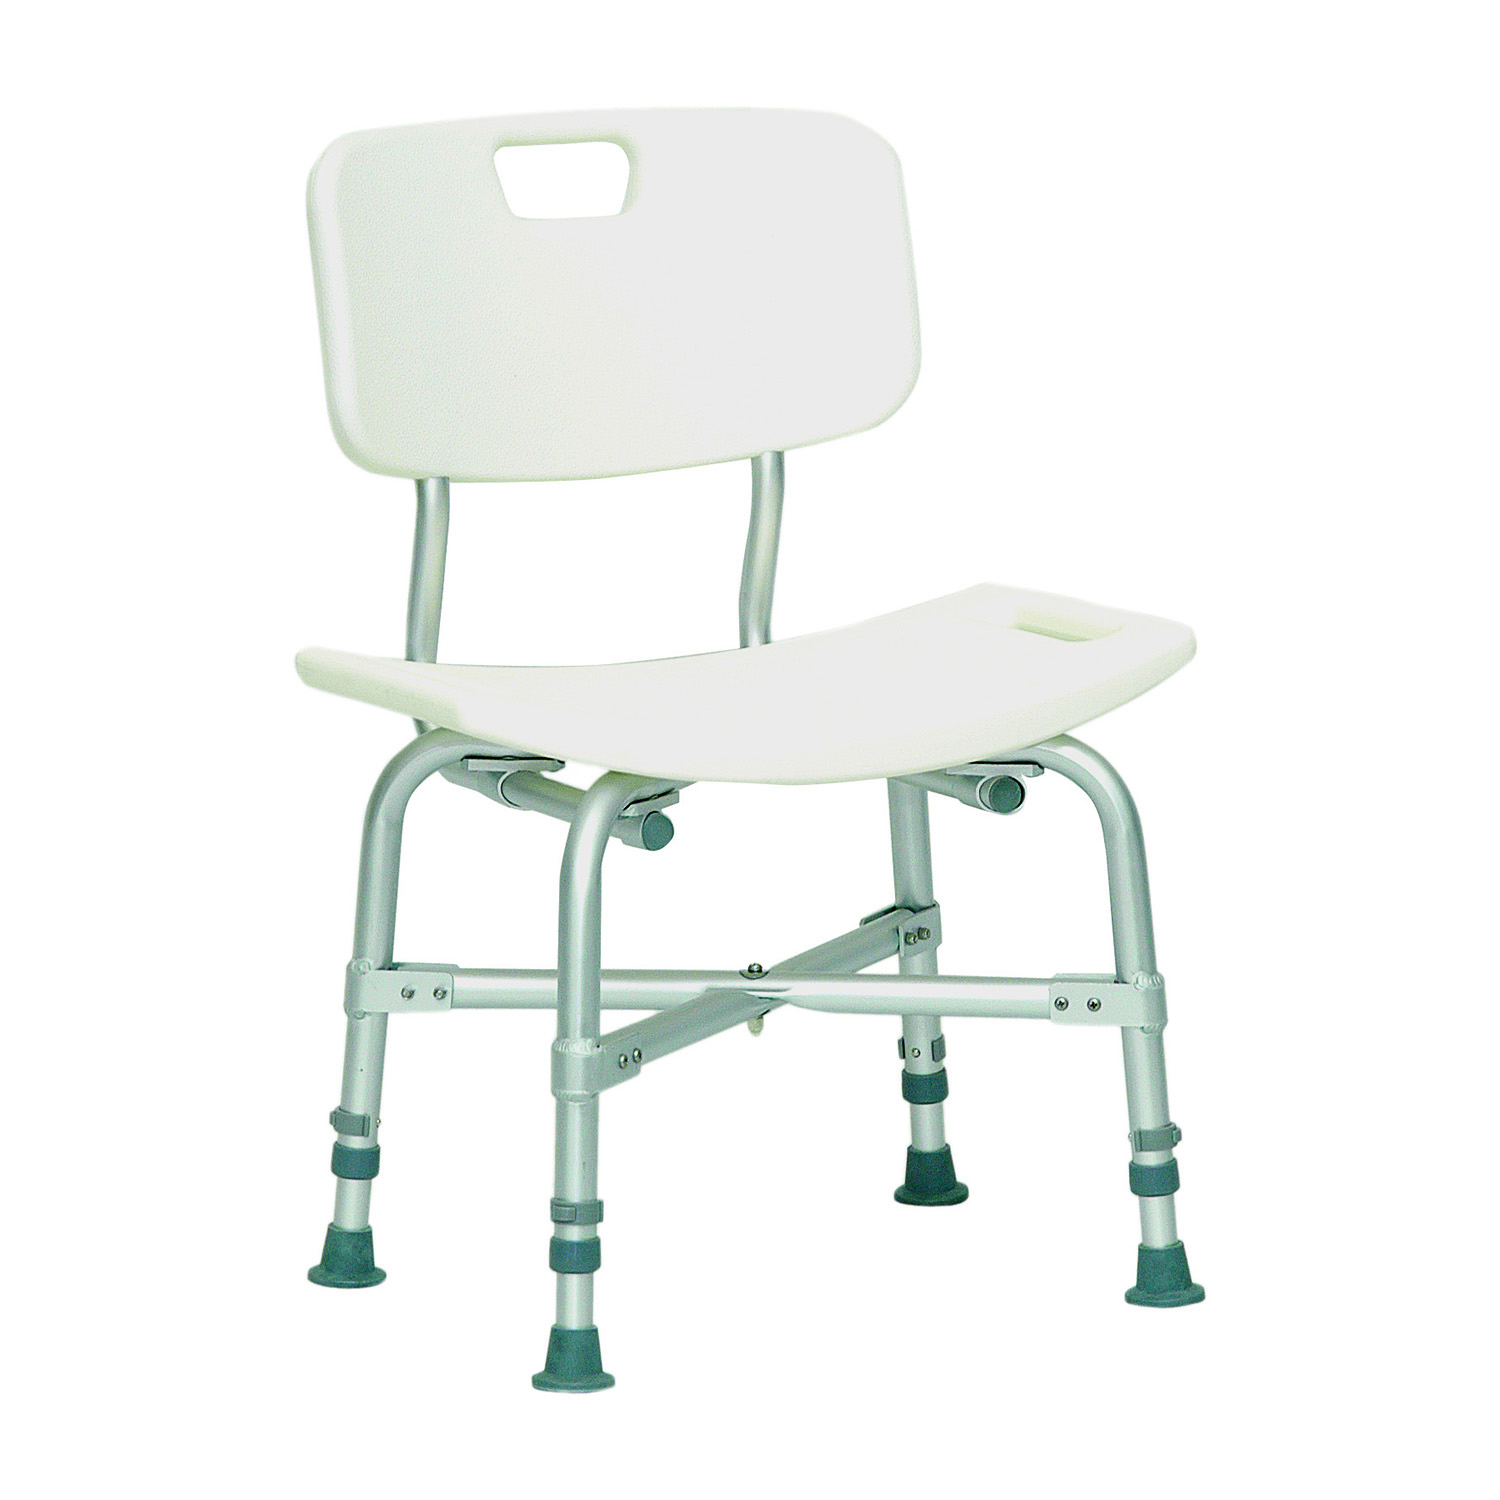 ProBasics Bariatric Shower Chair with Back   Michigan USA